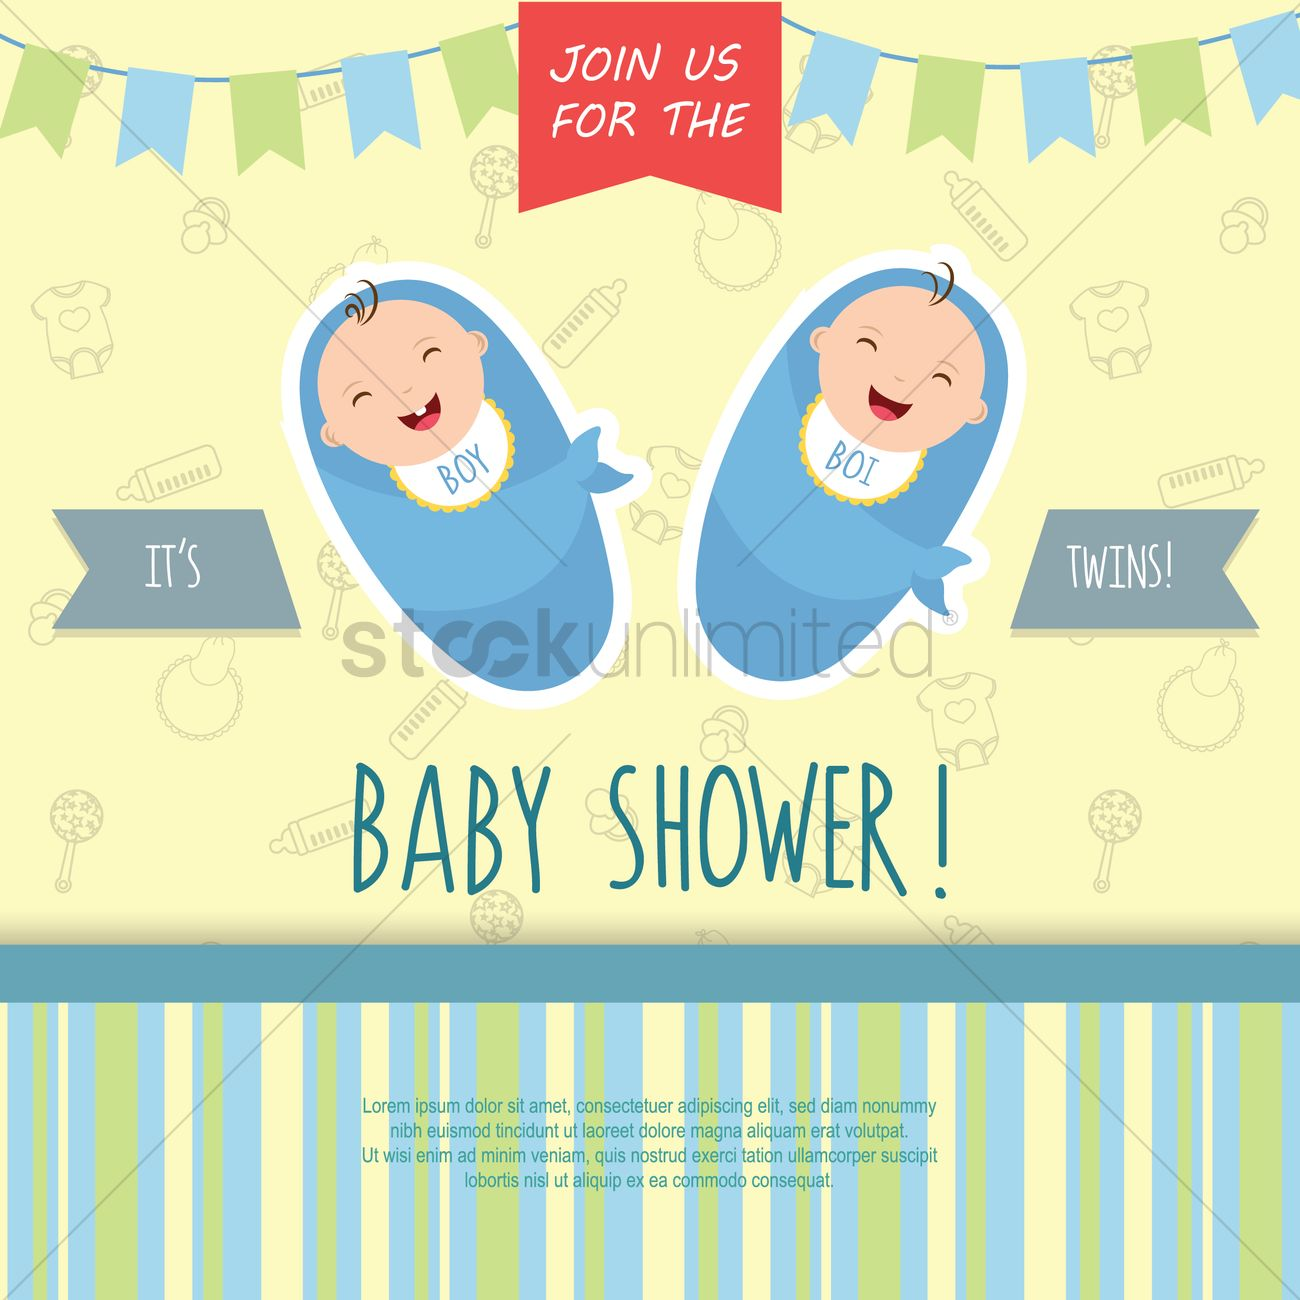 Baby shower invitation vector image 1820369 stockunlimited baby shower invitation vector graphic stopboris Image collections